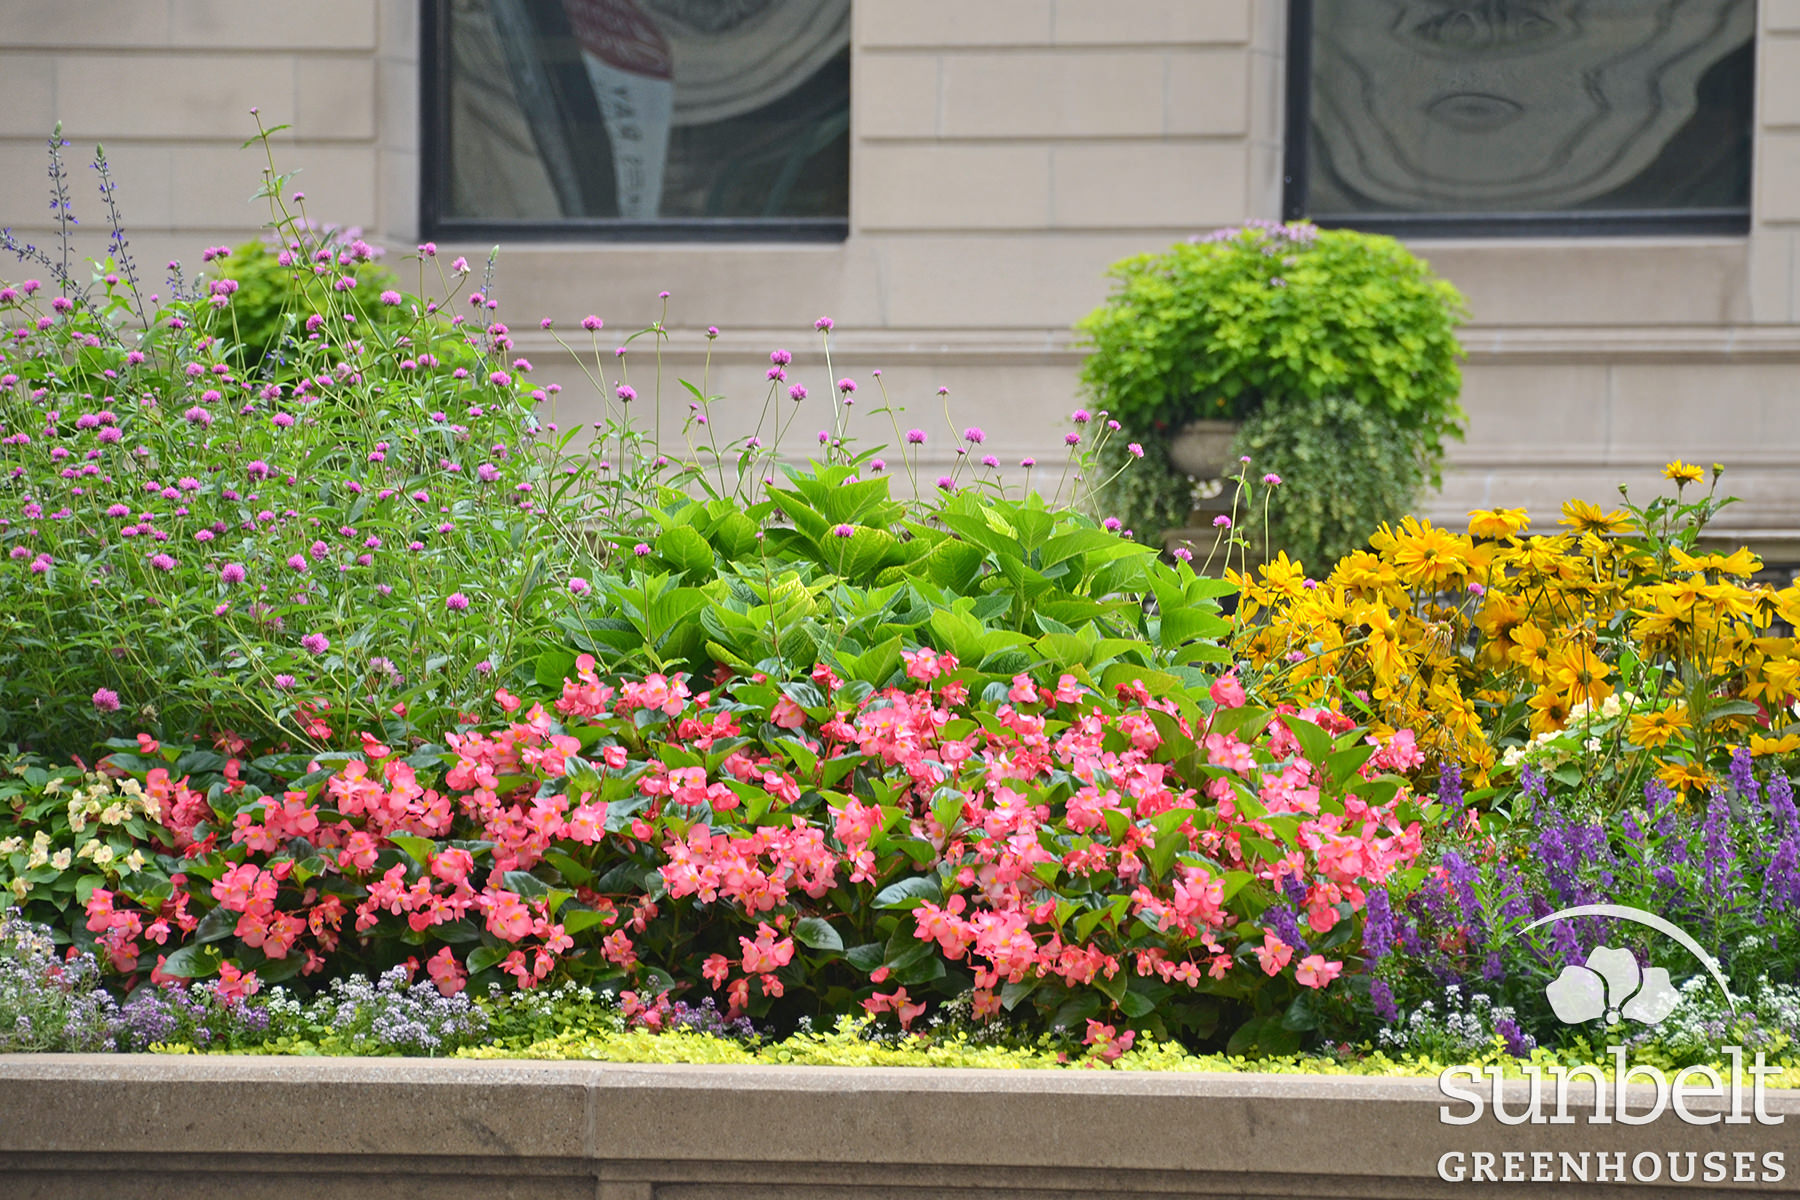 2015-08-19-chicago-landscaping-03.jpg